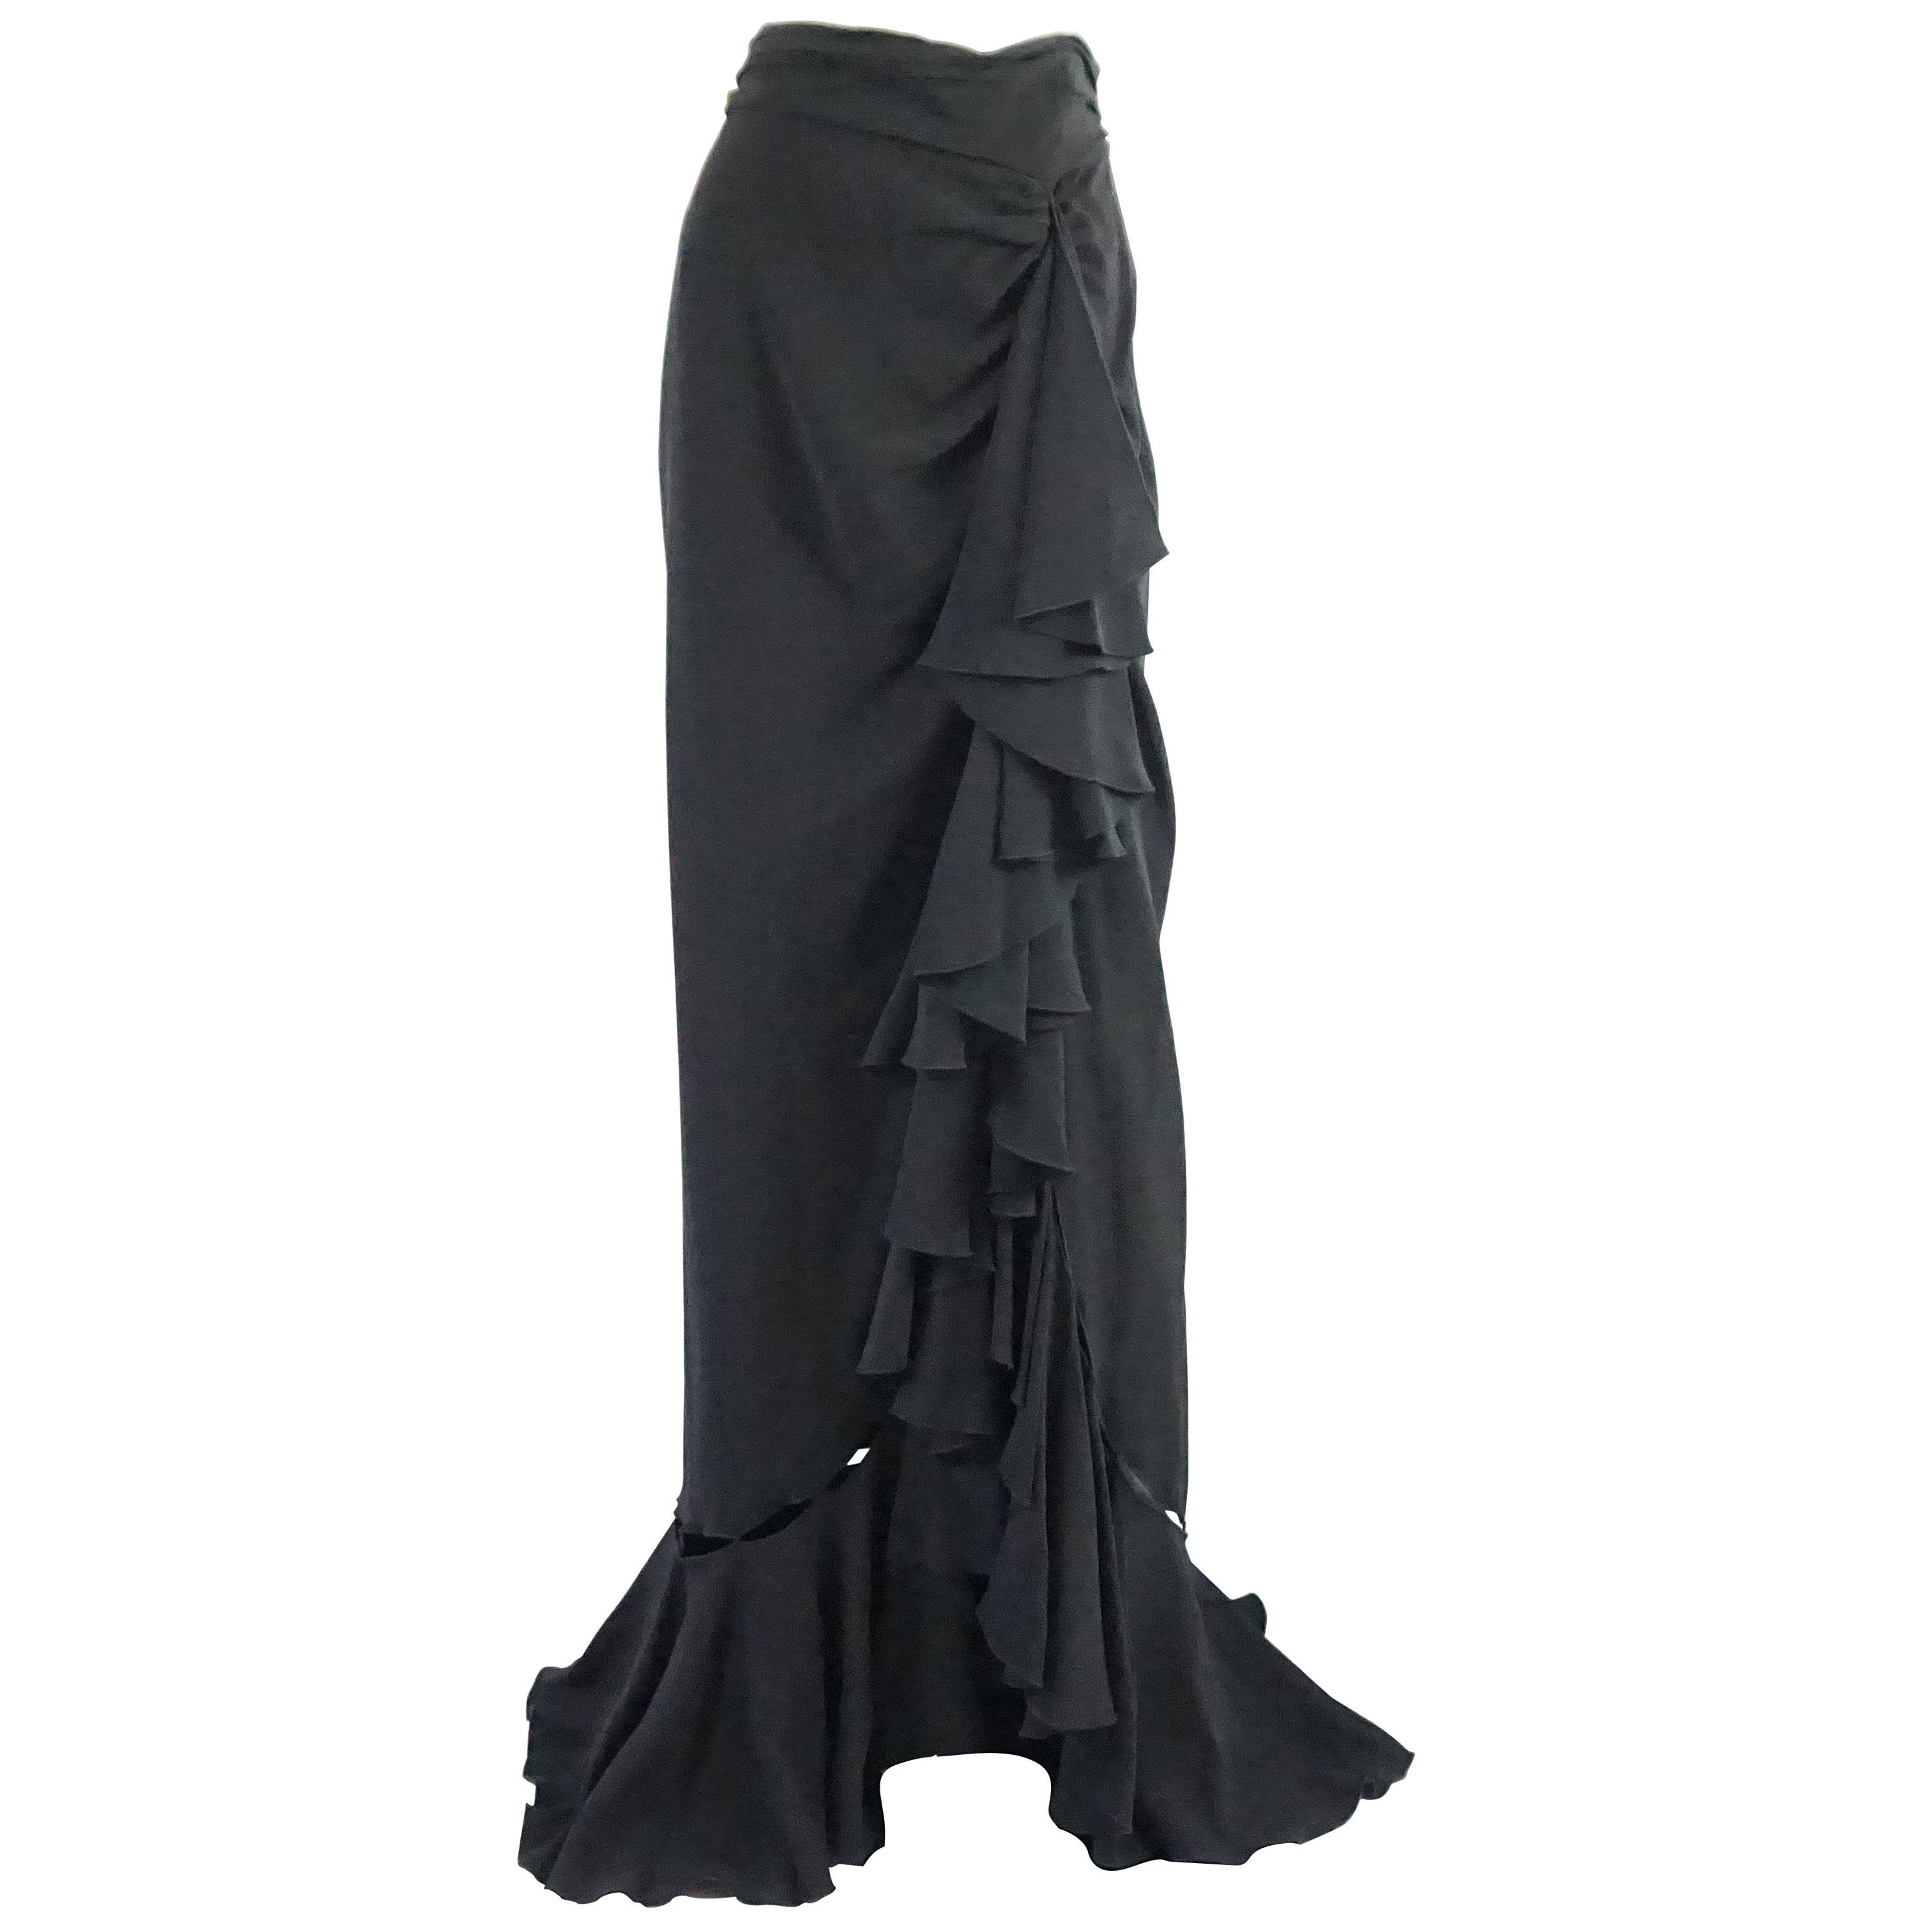 171f4b3b509 Naeem Khan Black Silk Long Ruffle Skirt with Cutouts - 12 For Sale at  1stdibs